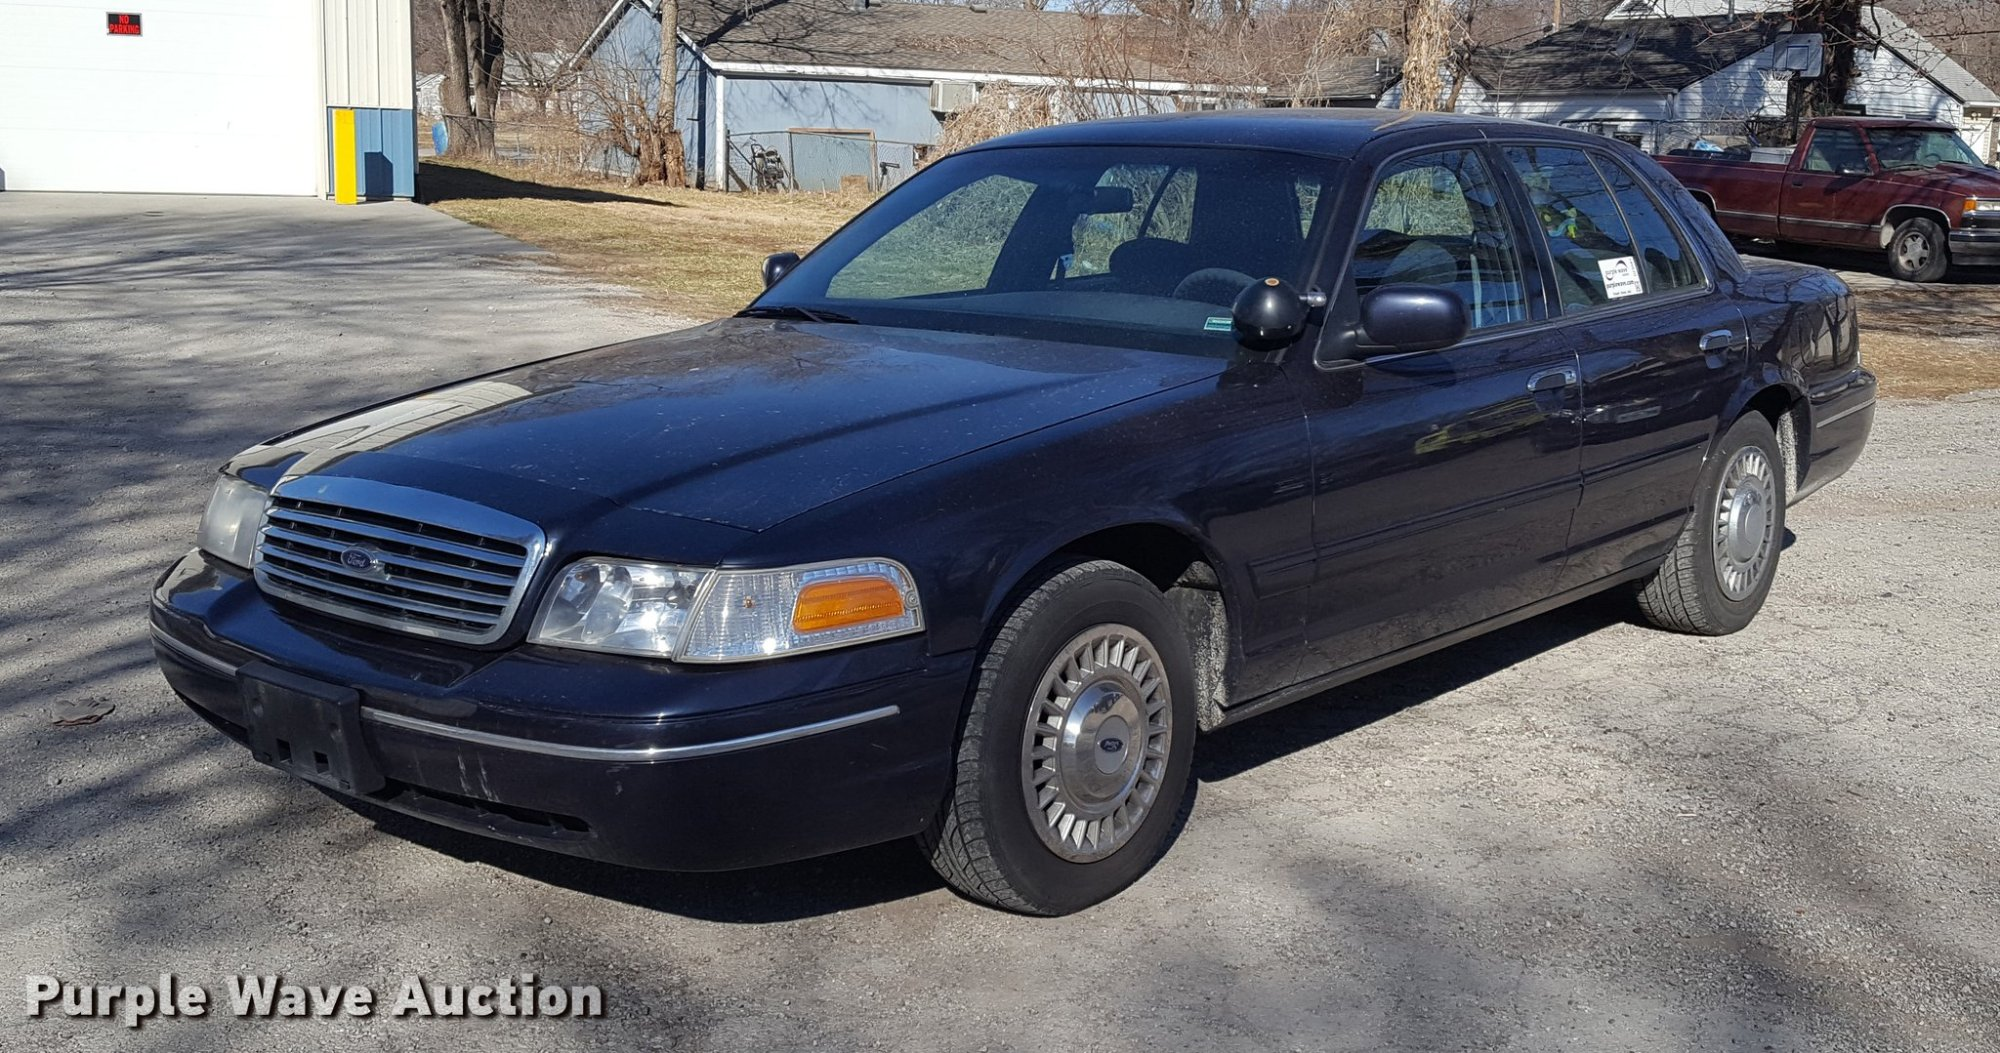 hight resolution of df3581 image for item df3581 1999 ford crown victoria police interceptor